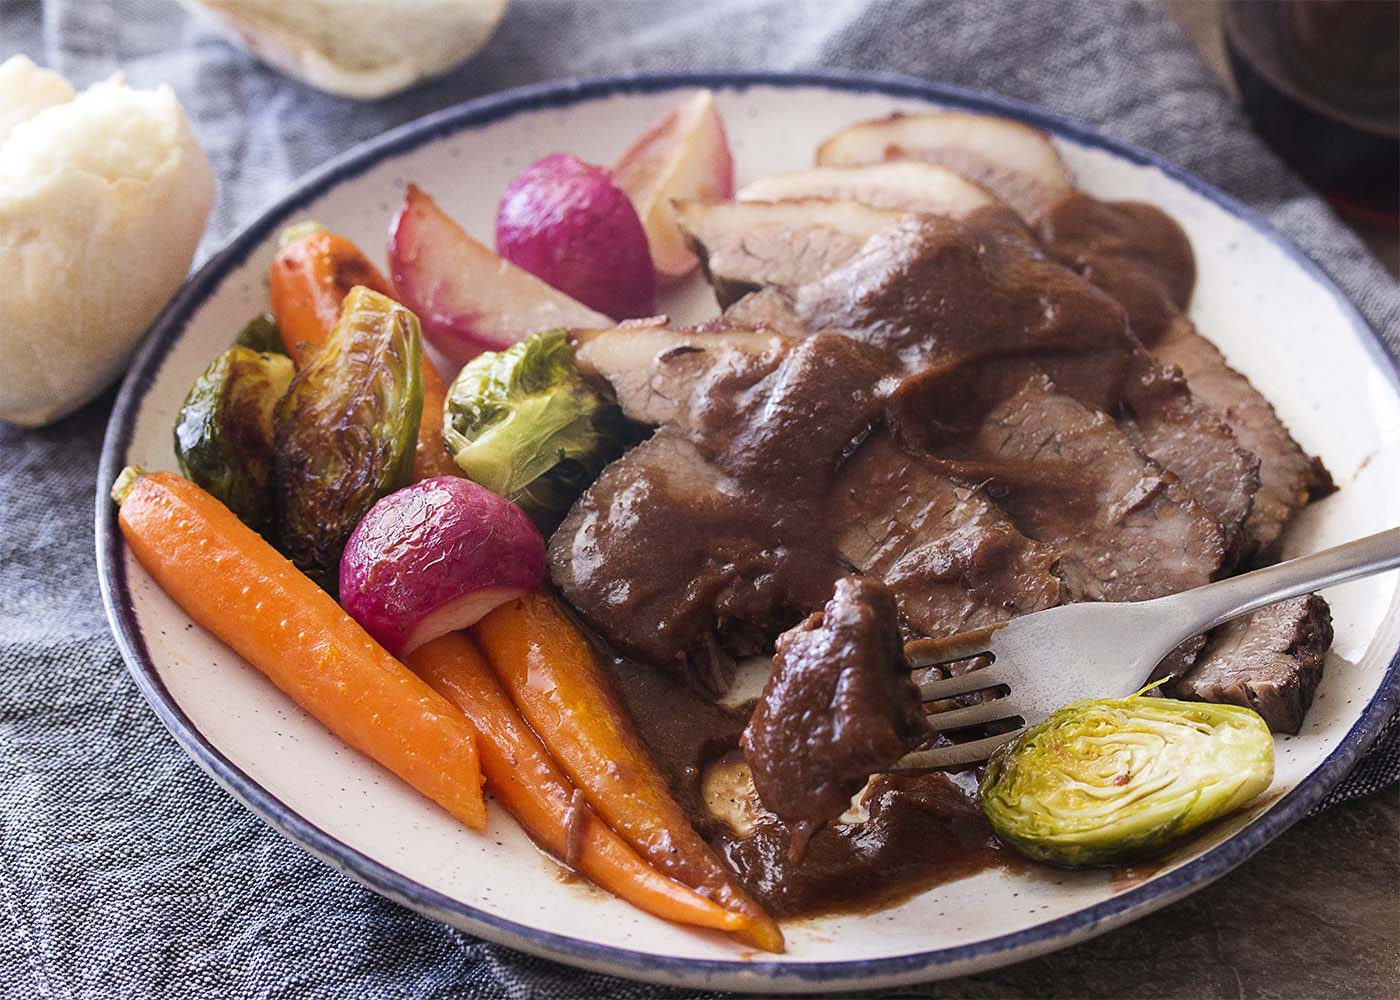 Closeup of a plate of beef brisket, vegetables, and gravy with a fork taking a piece of brisket.